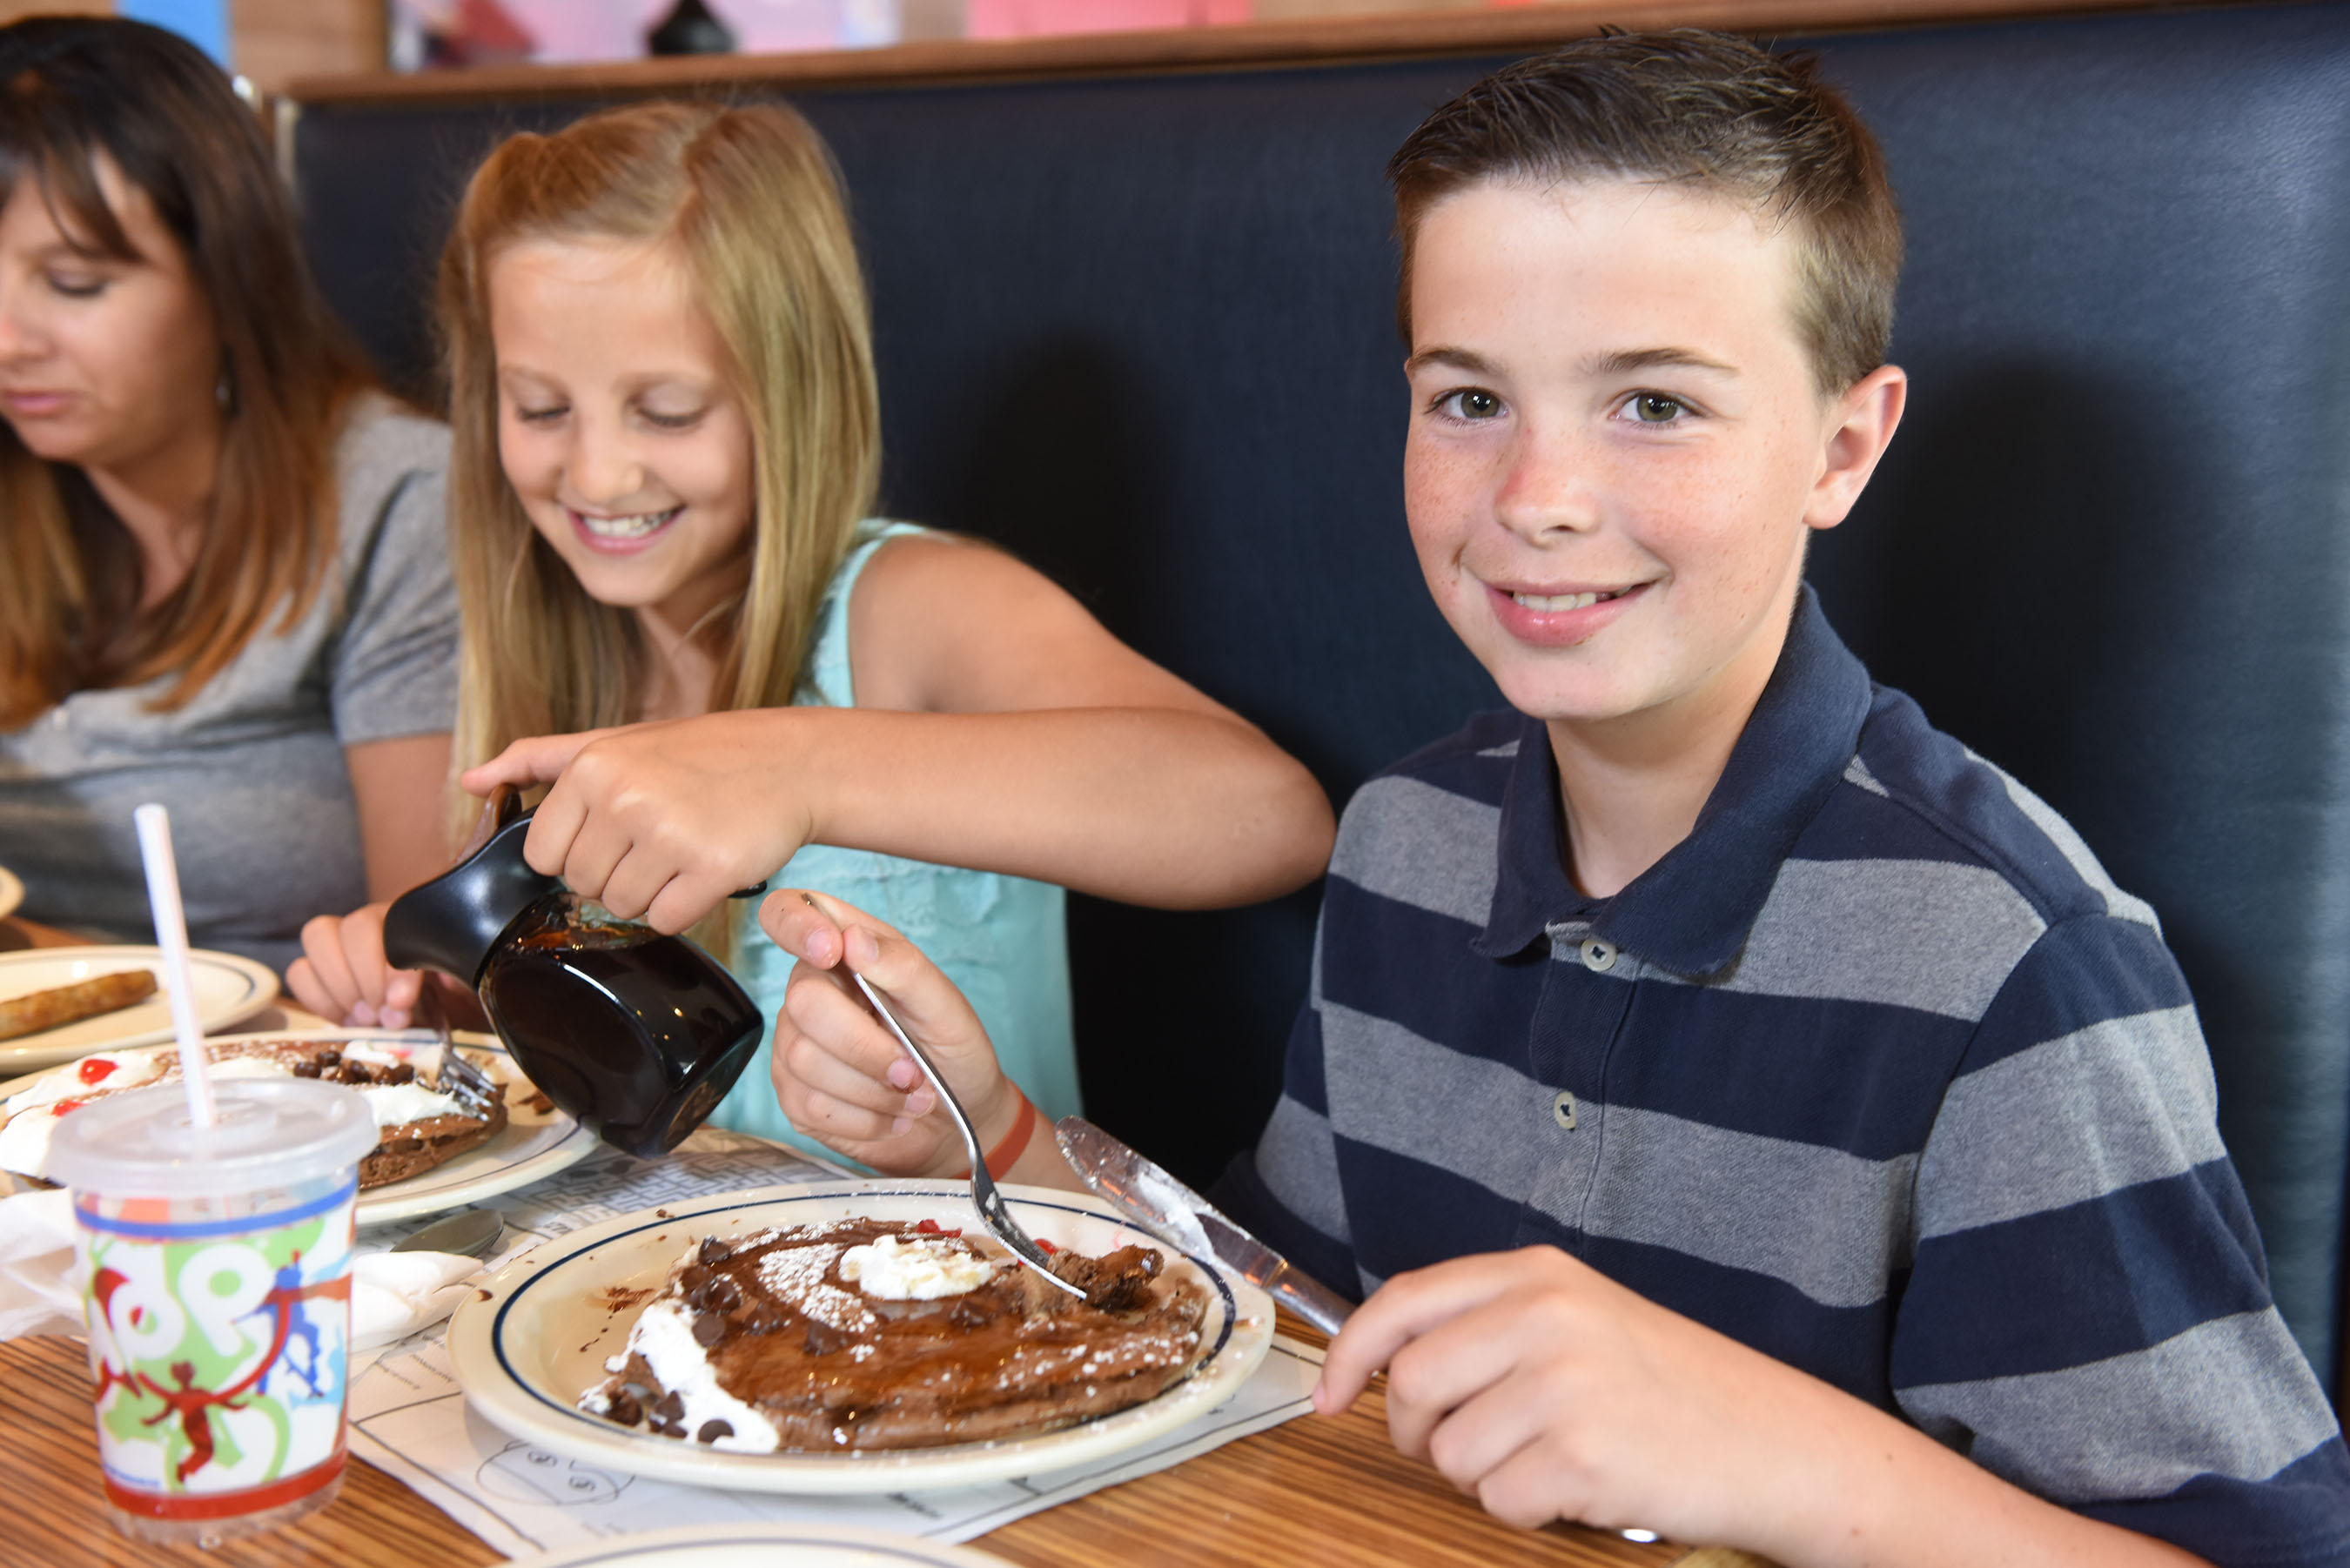 IHOP brings families together to enjoy freshly made-to-order food and specialty beverages.